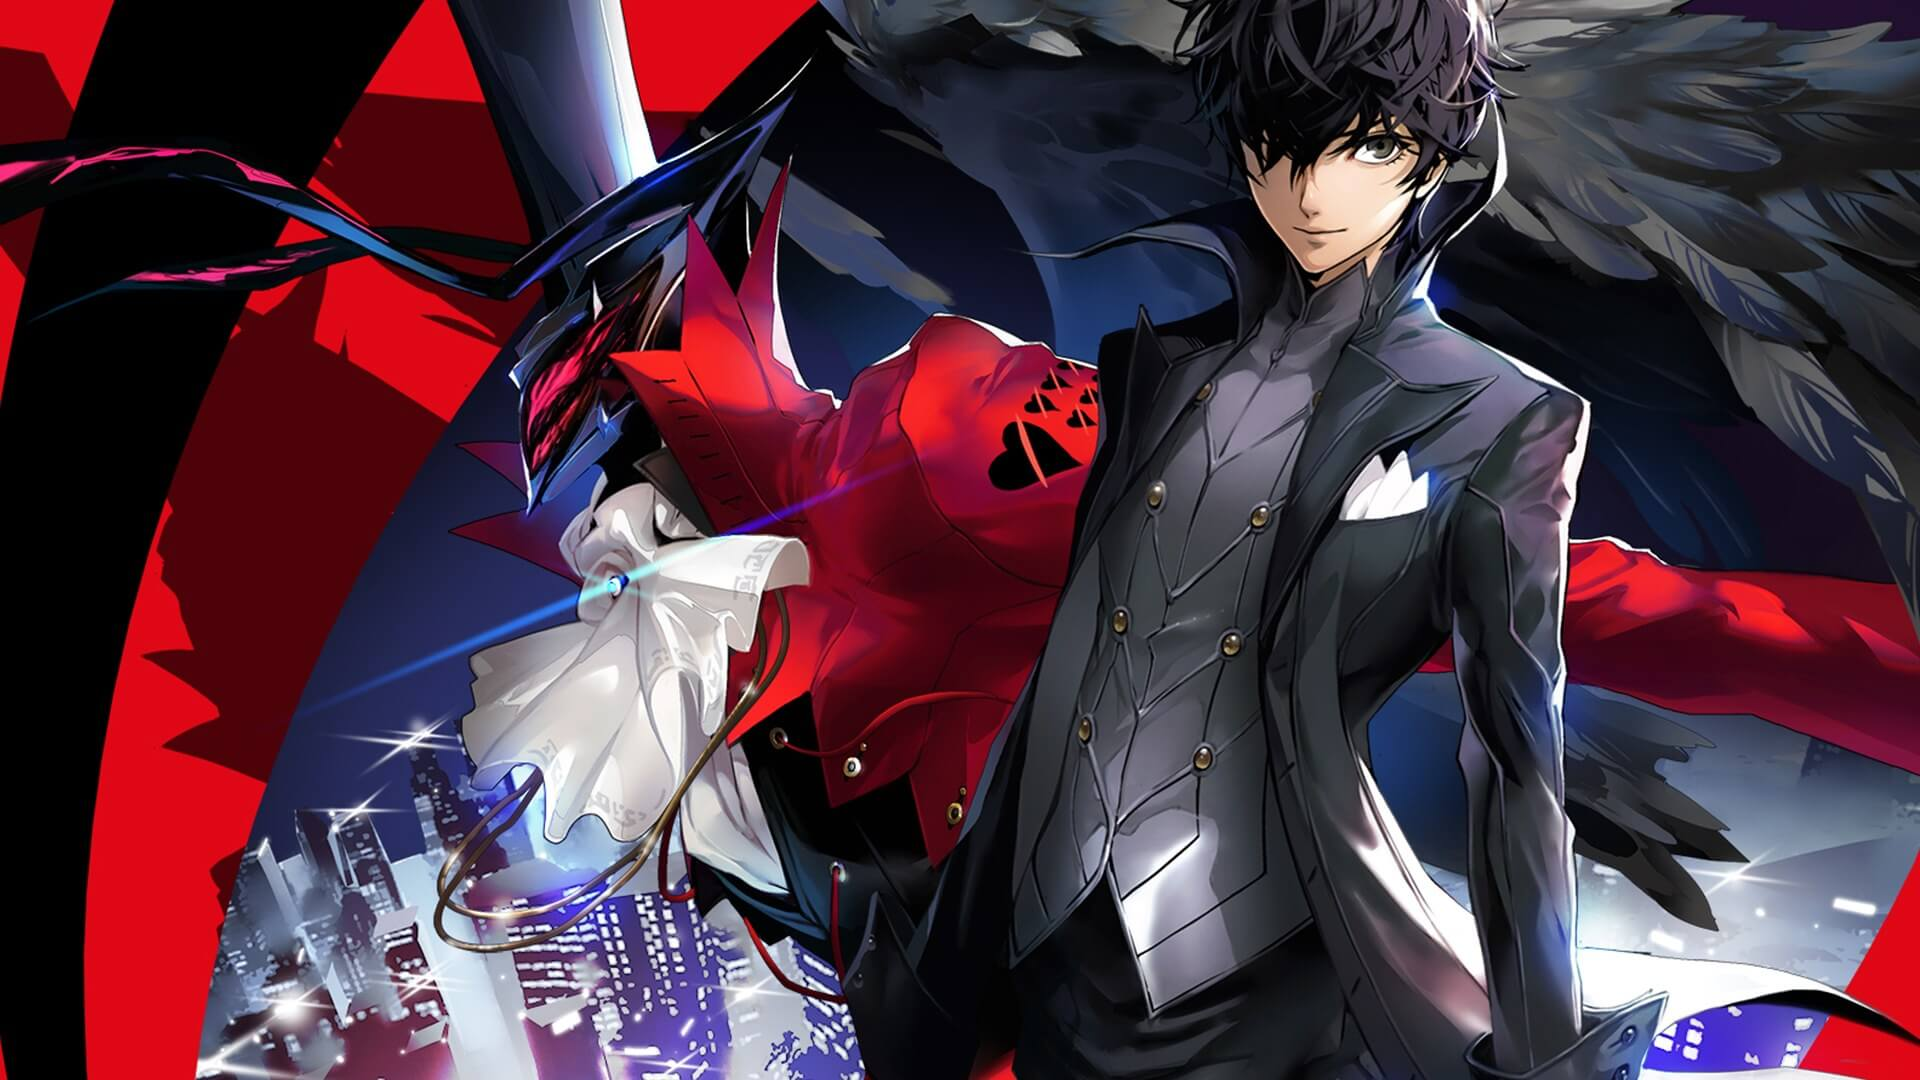 'Persona 5 The Royal' Is an Overhaul With a New Phantom Thief